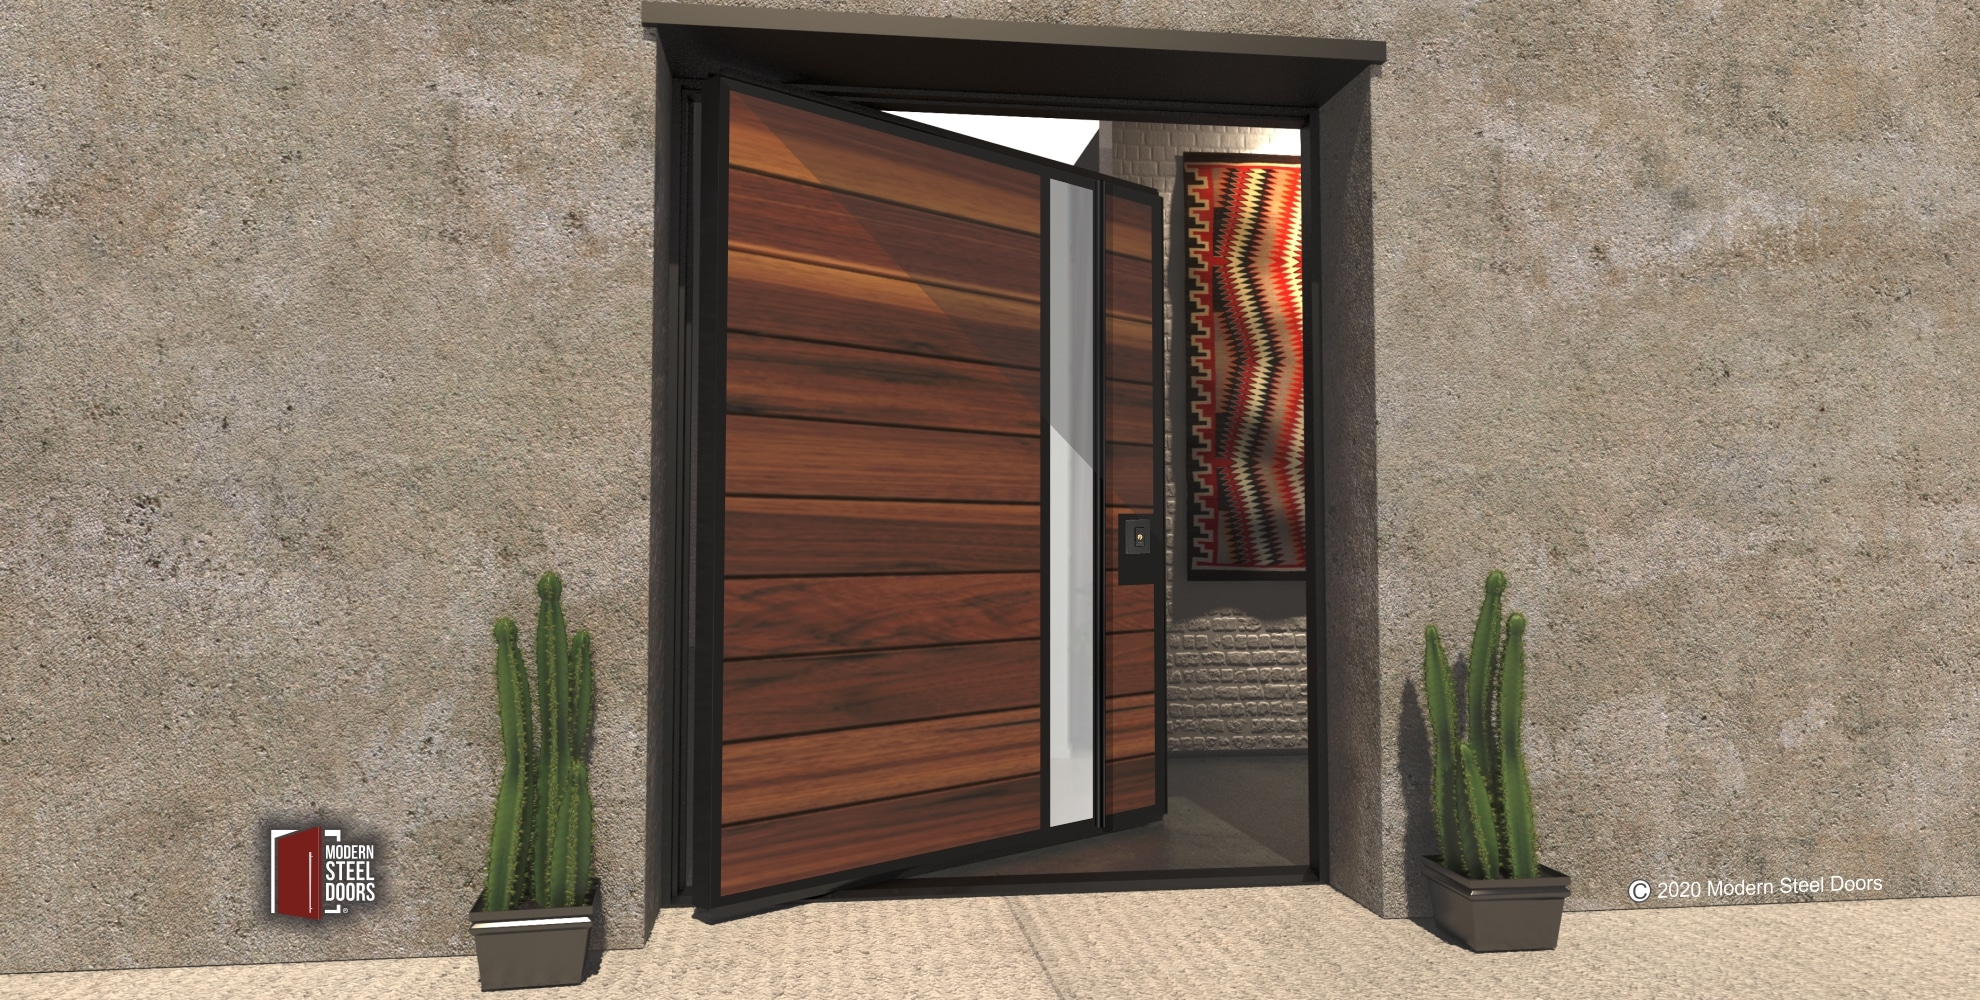 METAL FRAMED WOOD DOOR WITH LITE